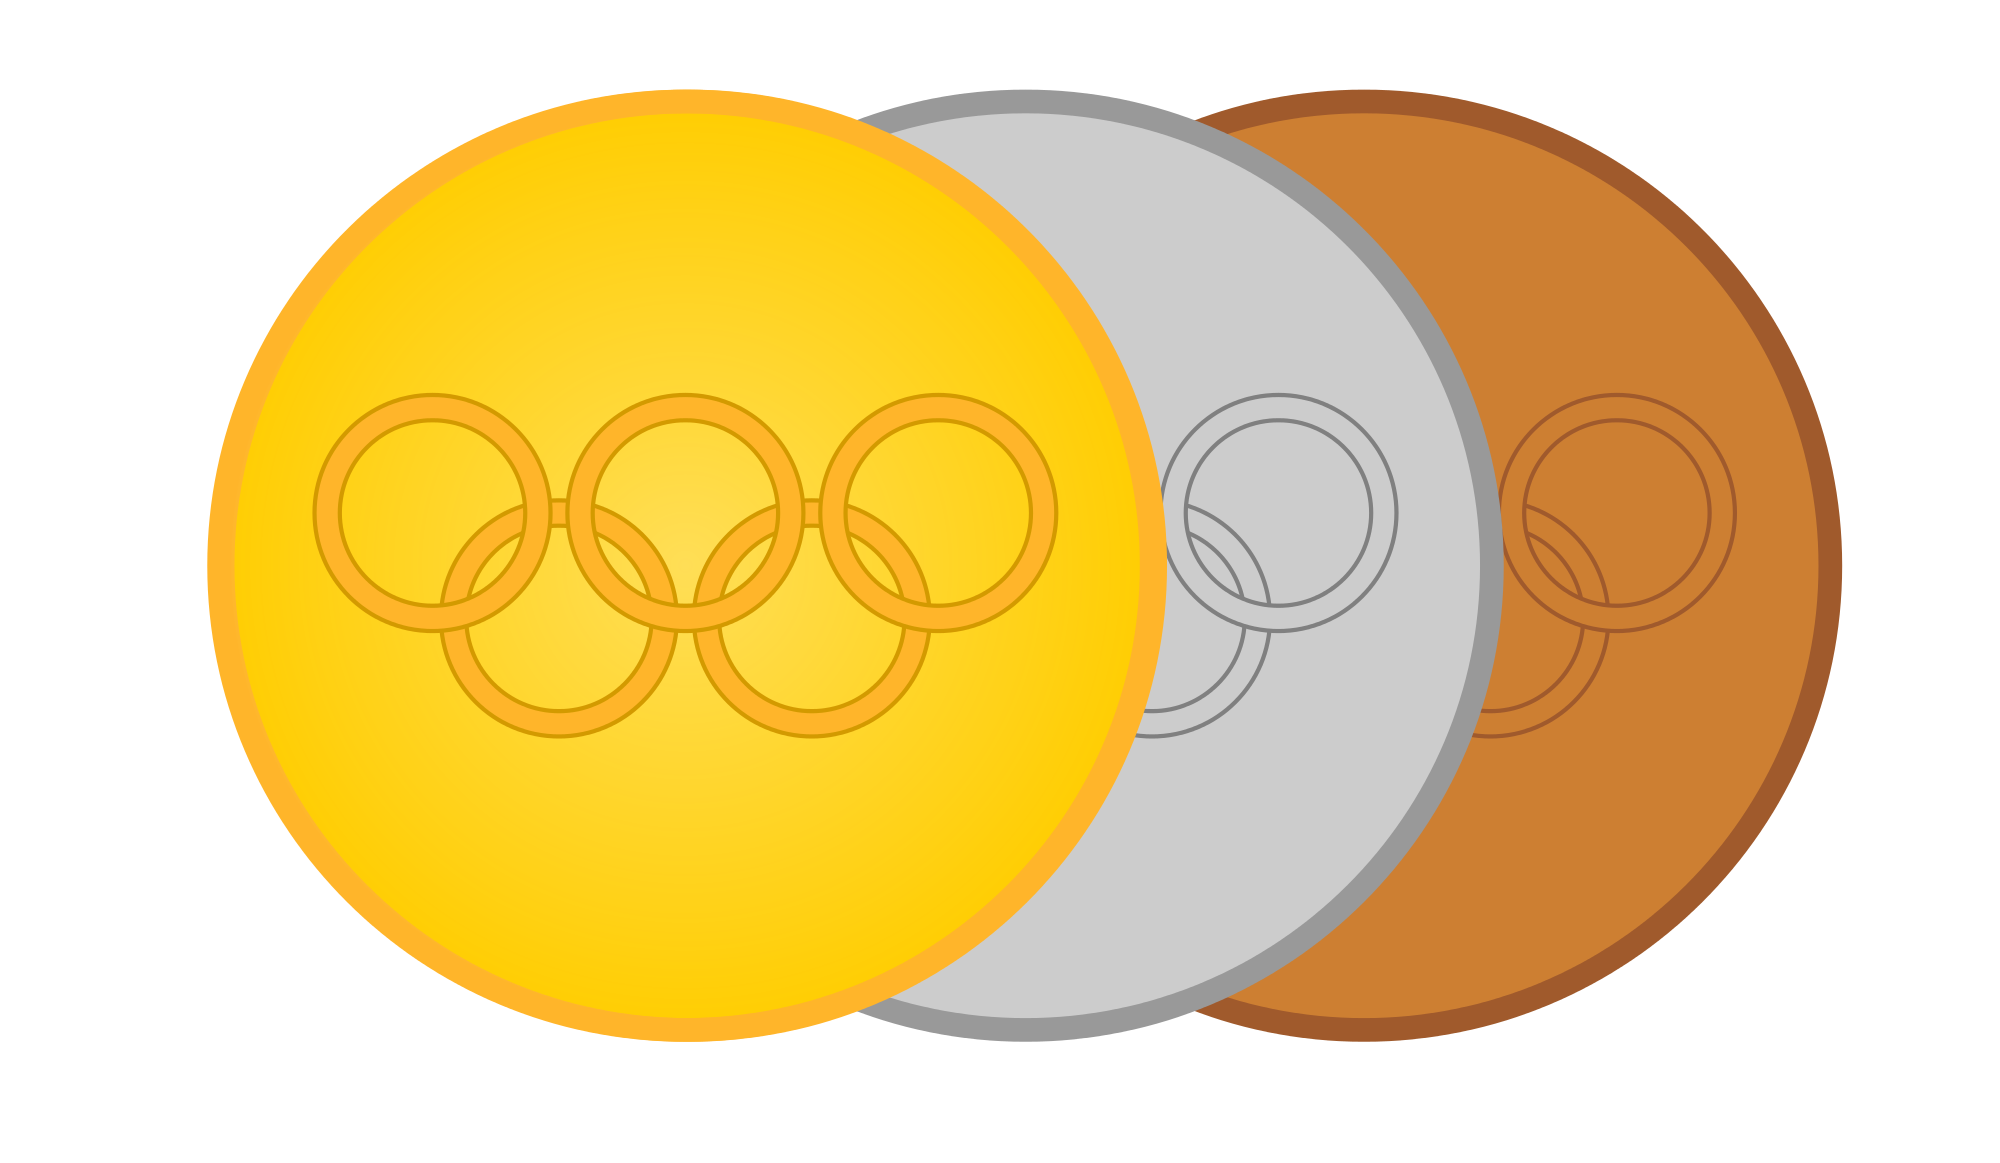 Olympics clipart gold medalist. File goldsilverbronze medals svg